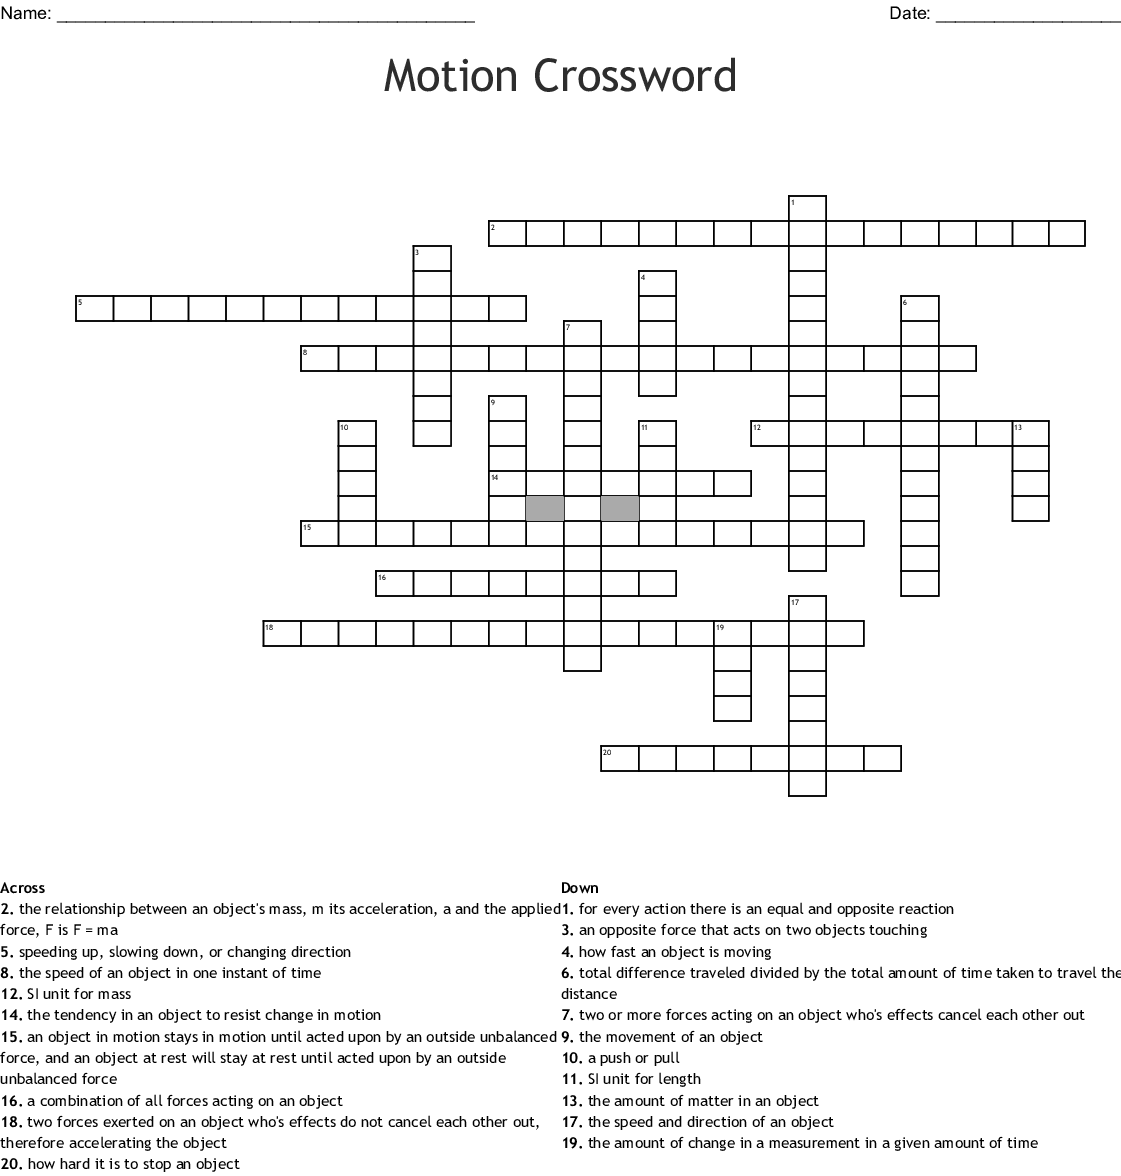 Force, Motion, and Newton's Laws Crossword Puzzle - WordMint